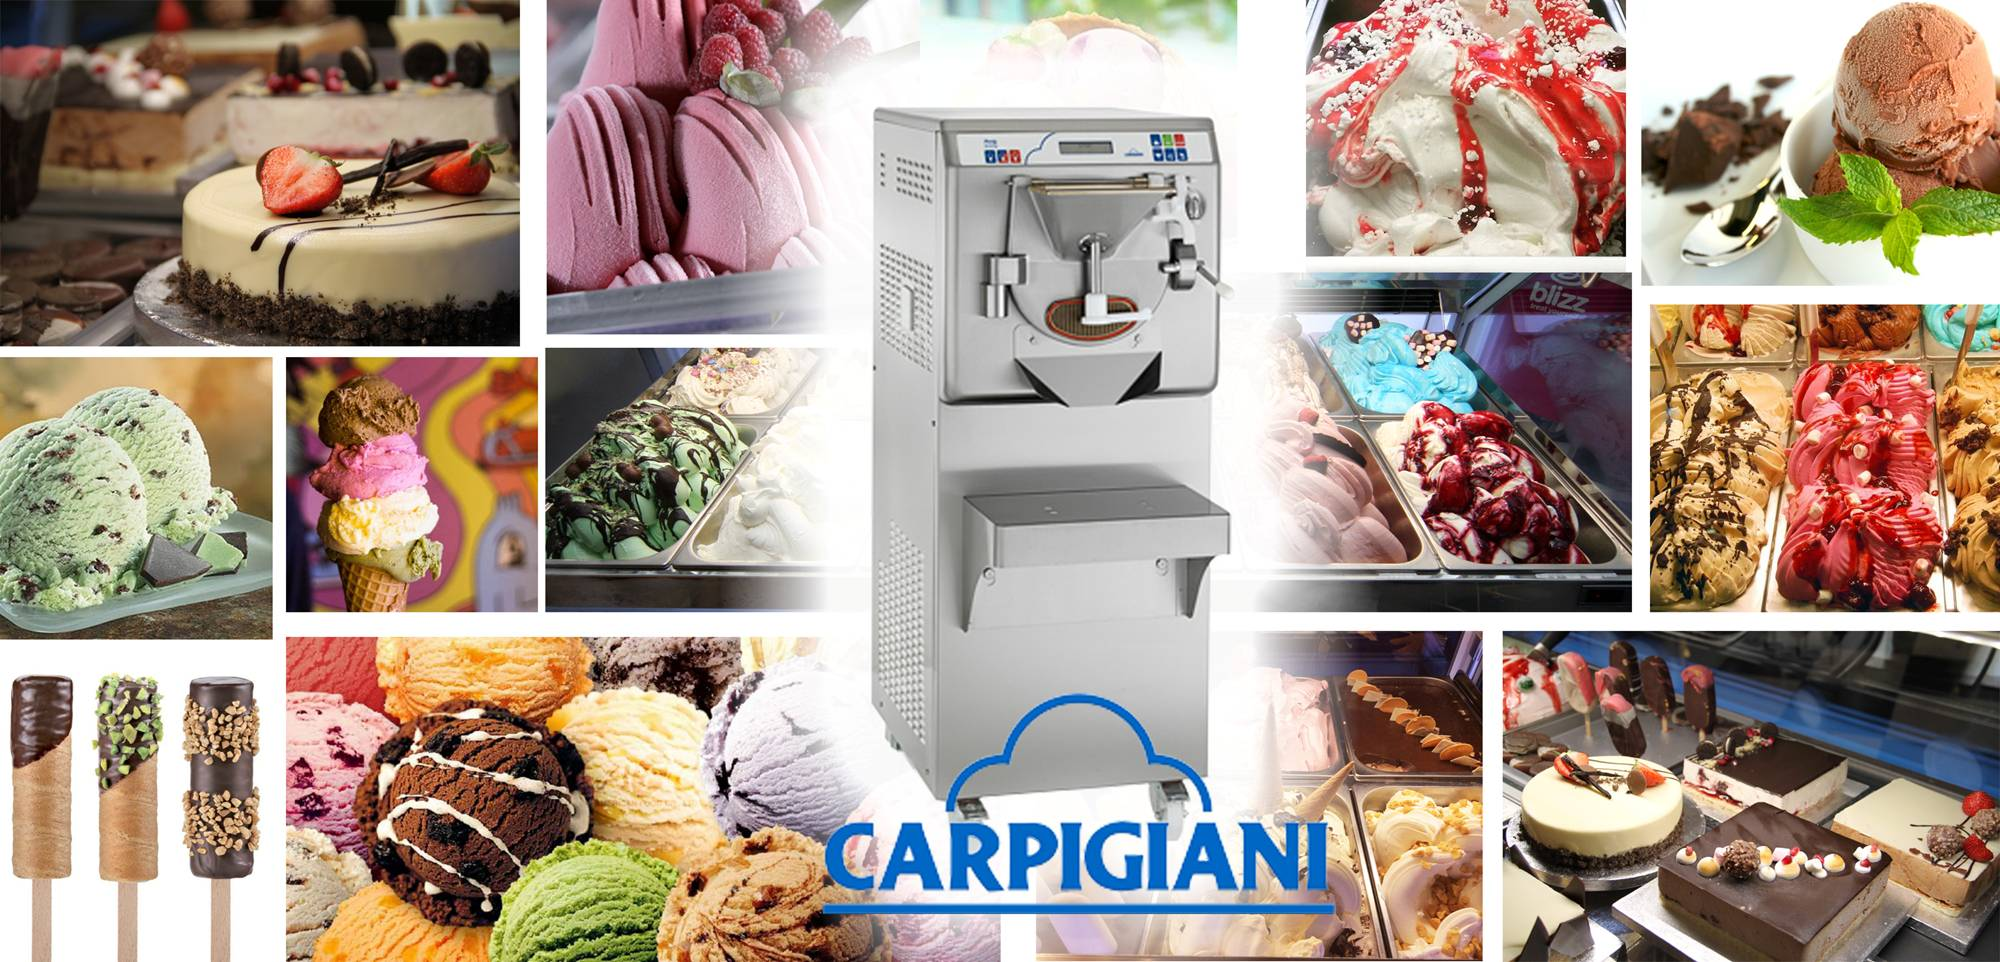 Martin Food Equipment Carpigiani-Labo-Collage Upcoming Artisan Gelato Introductory DEMONSTRATION Events